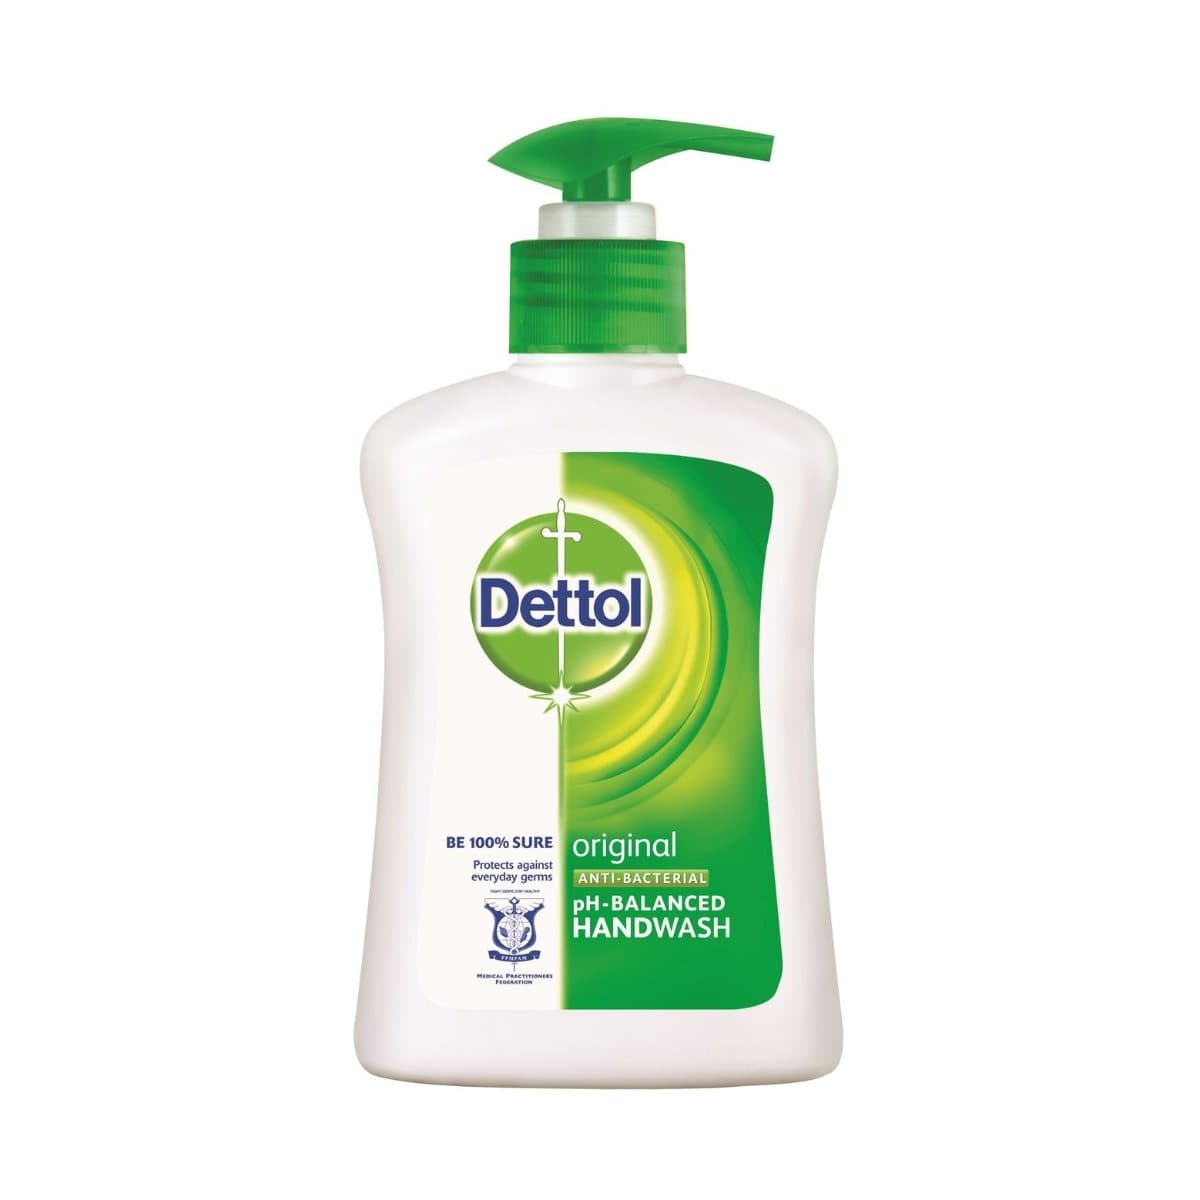 Dettol Handwash Anti-Bacterial 200ml